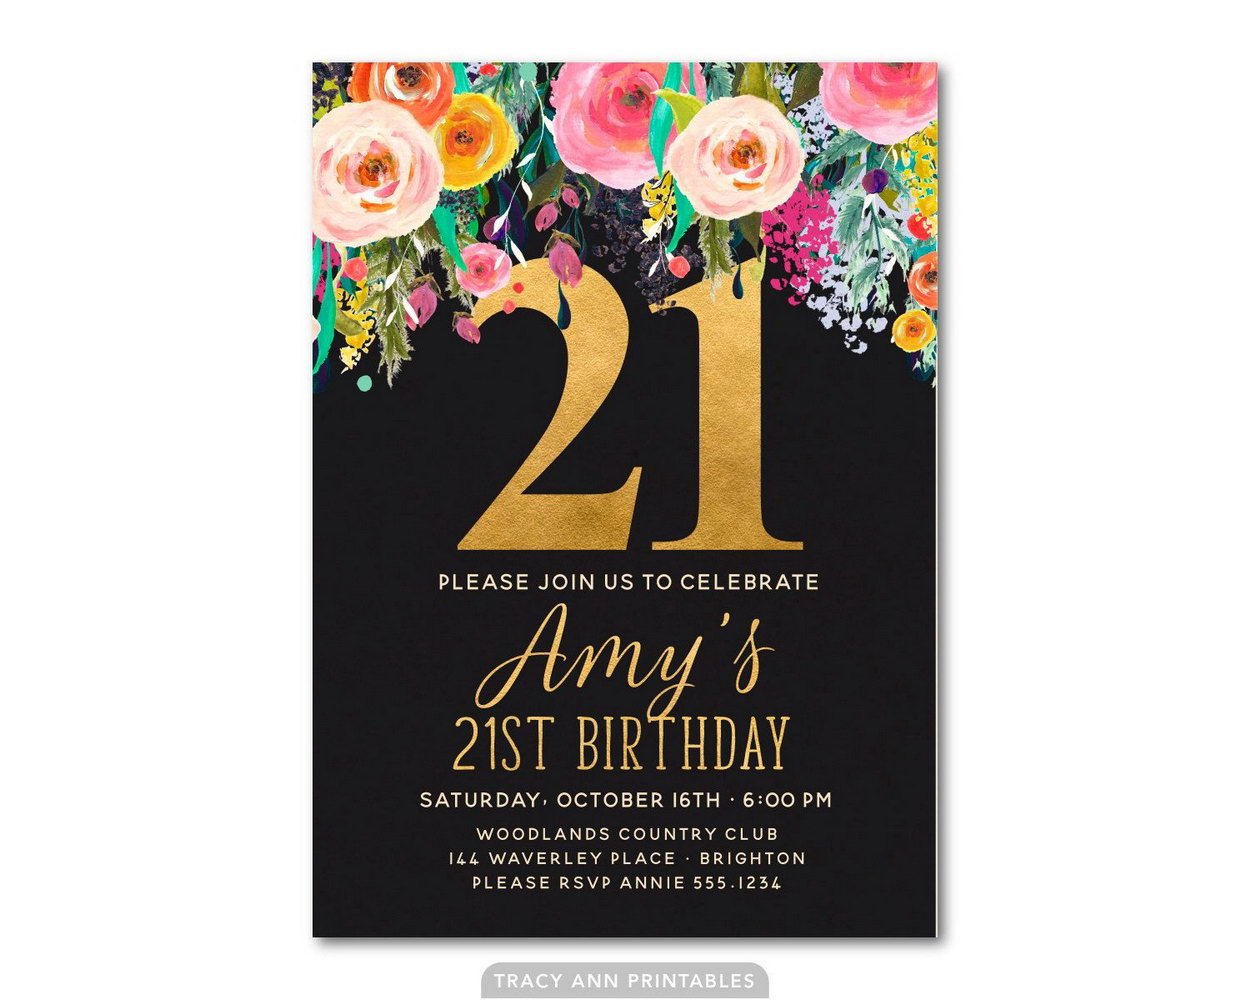 Invitation Templates For 21st Birthday Parties